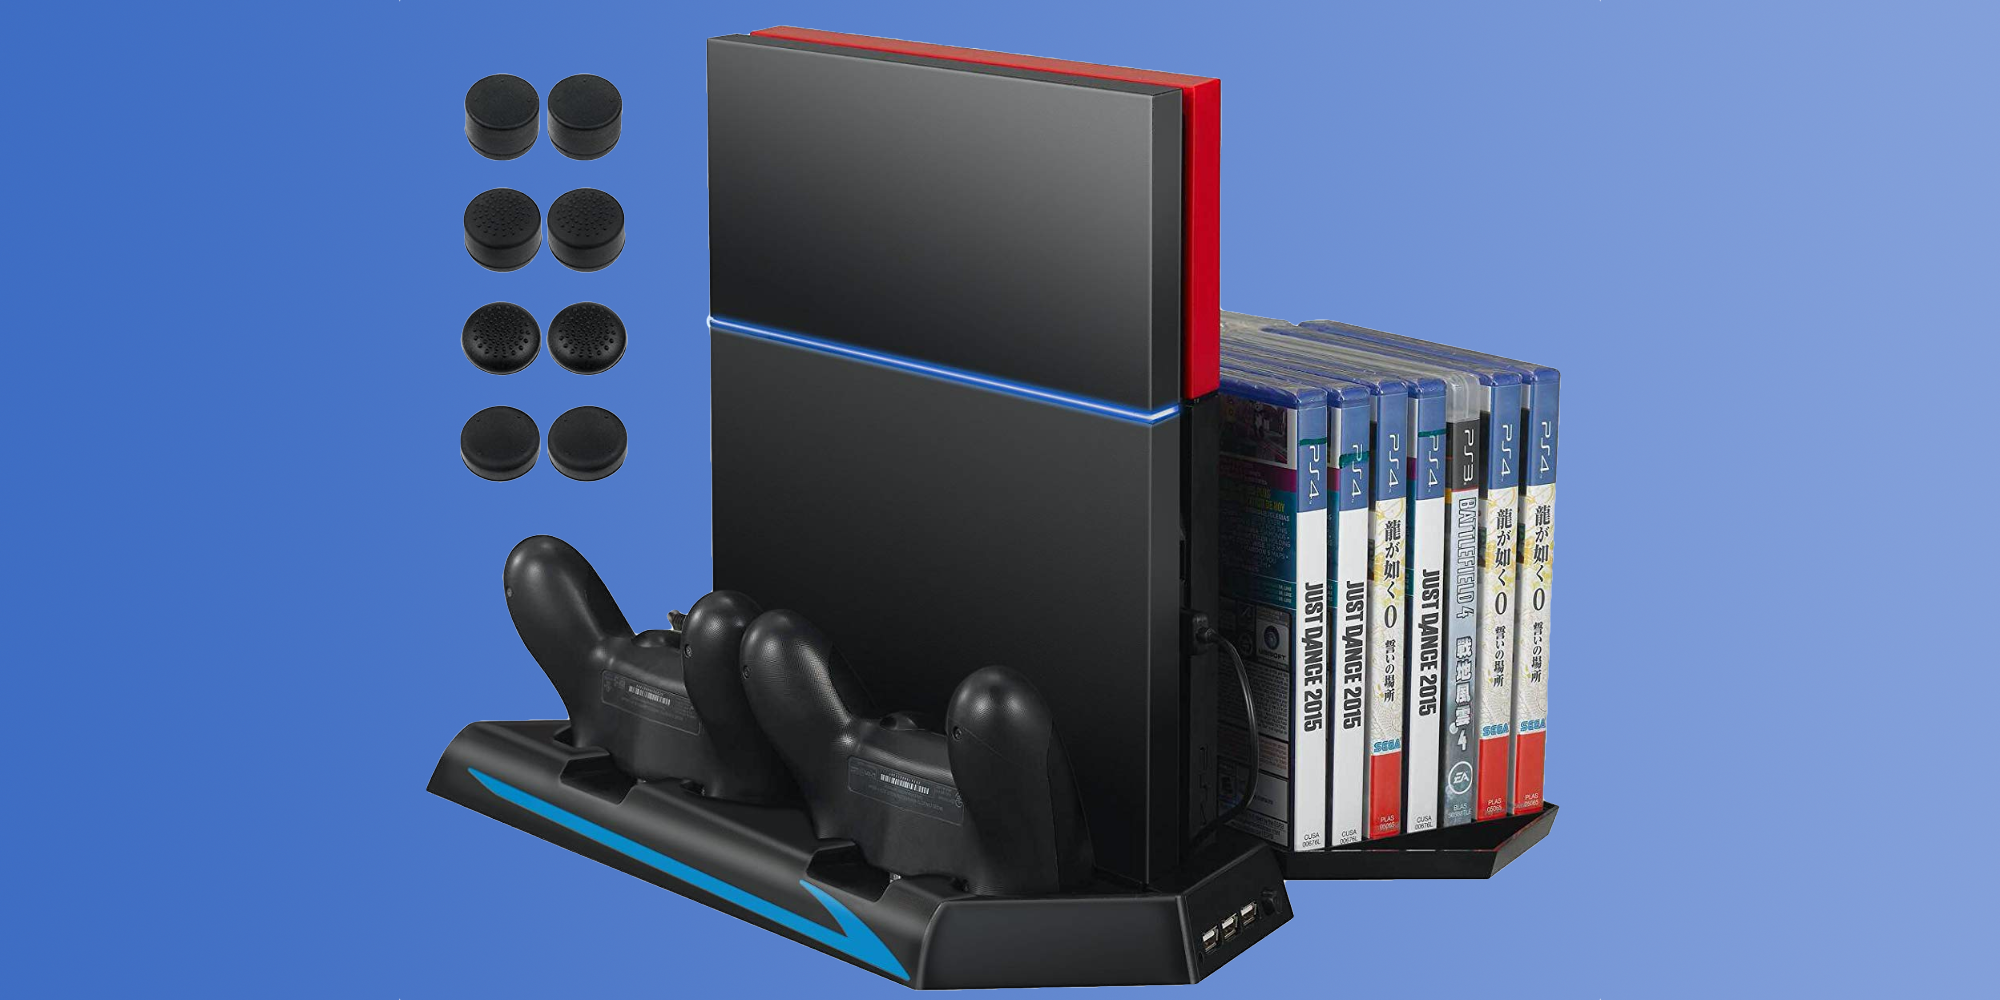 This vertical PS4 stand charges your controllers and more at $13 Prime shipped